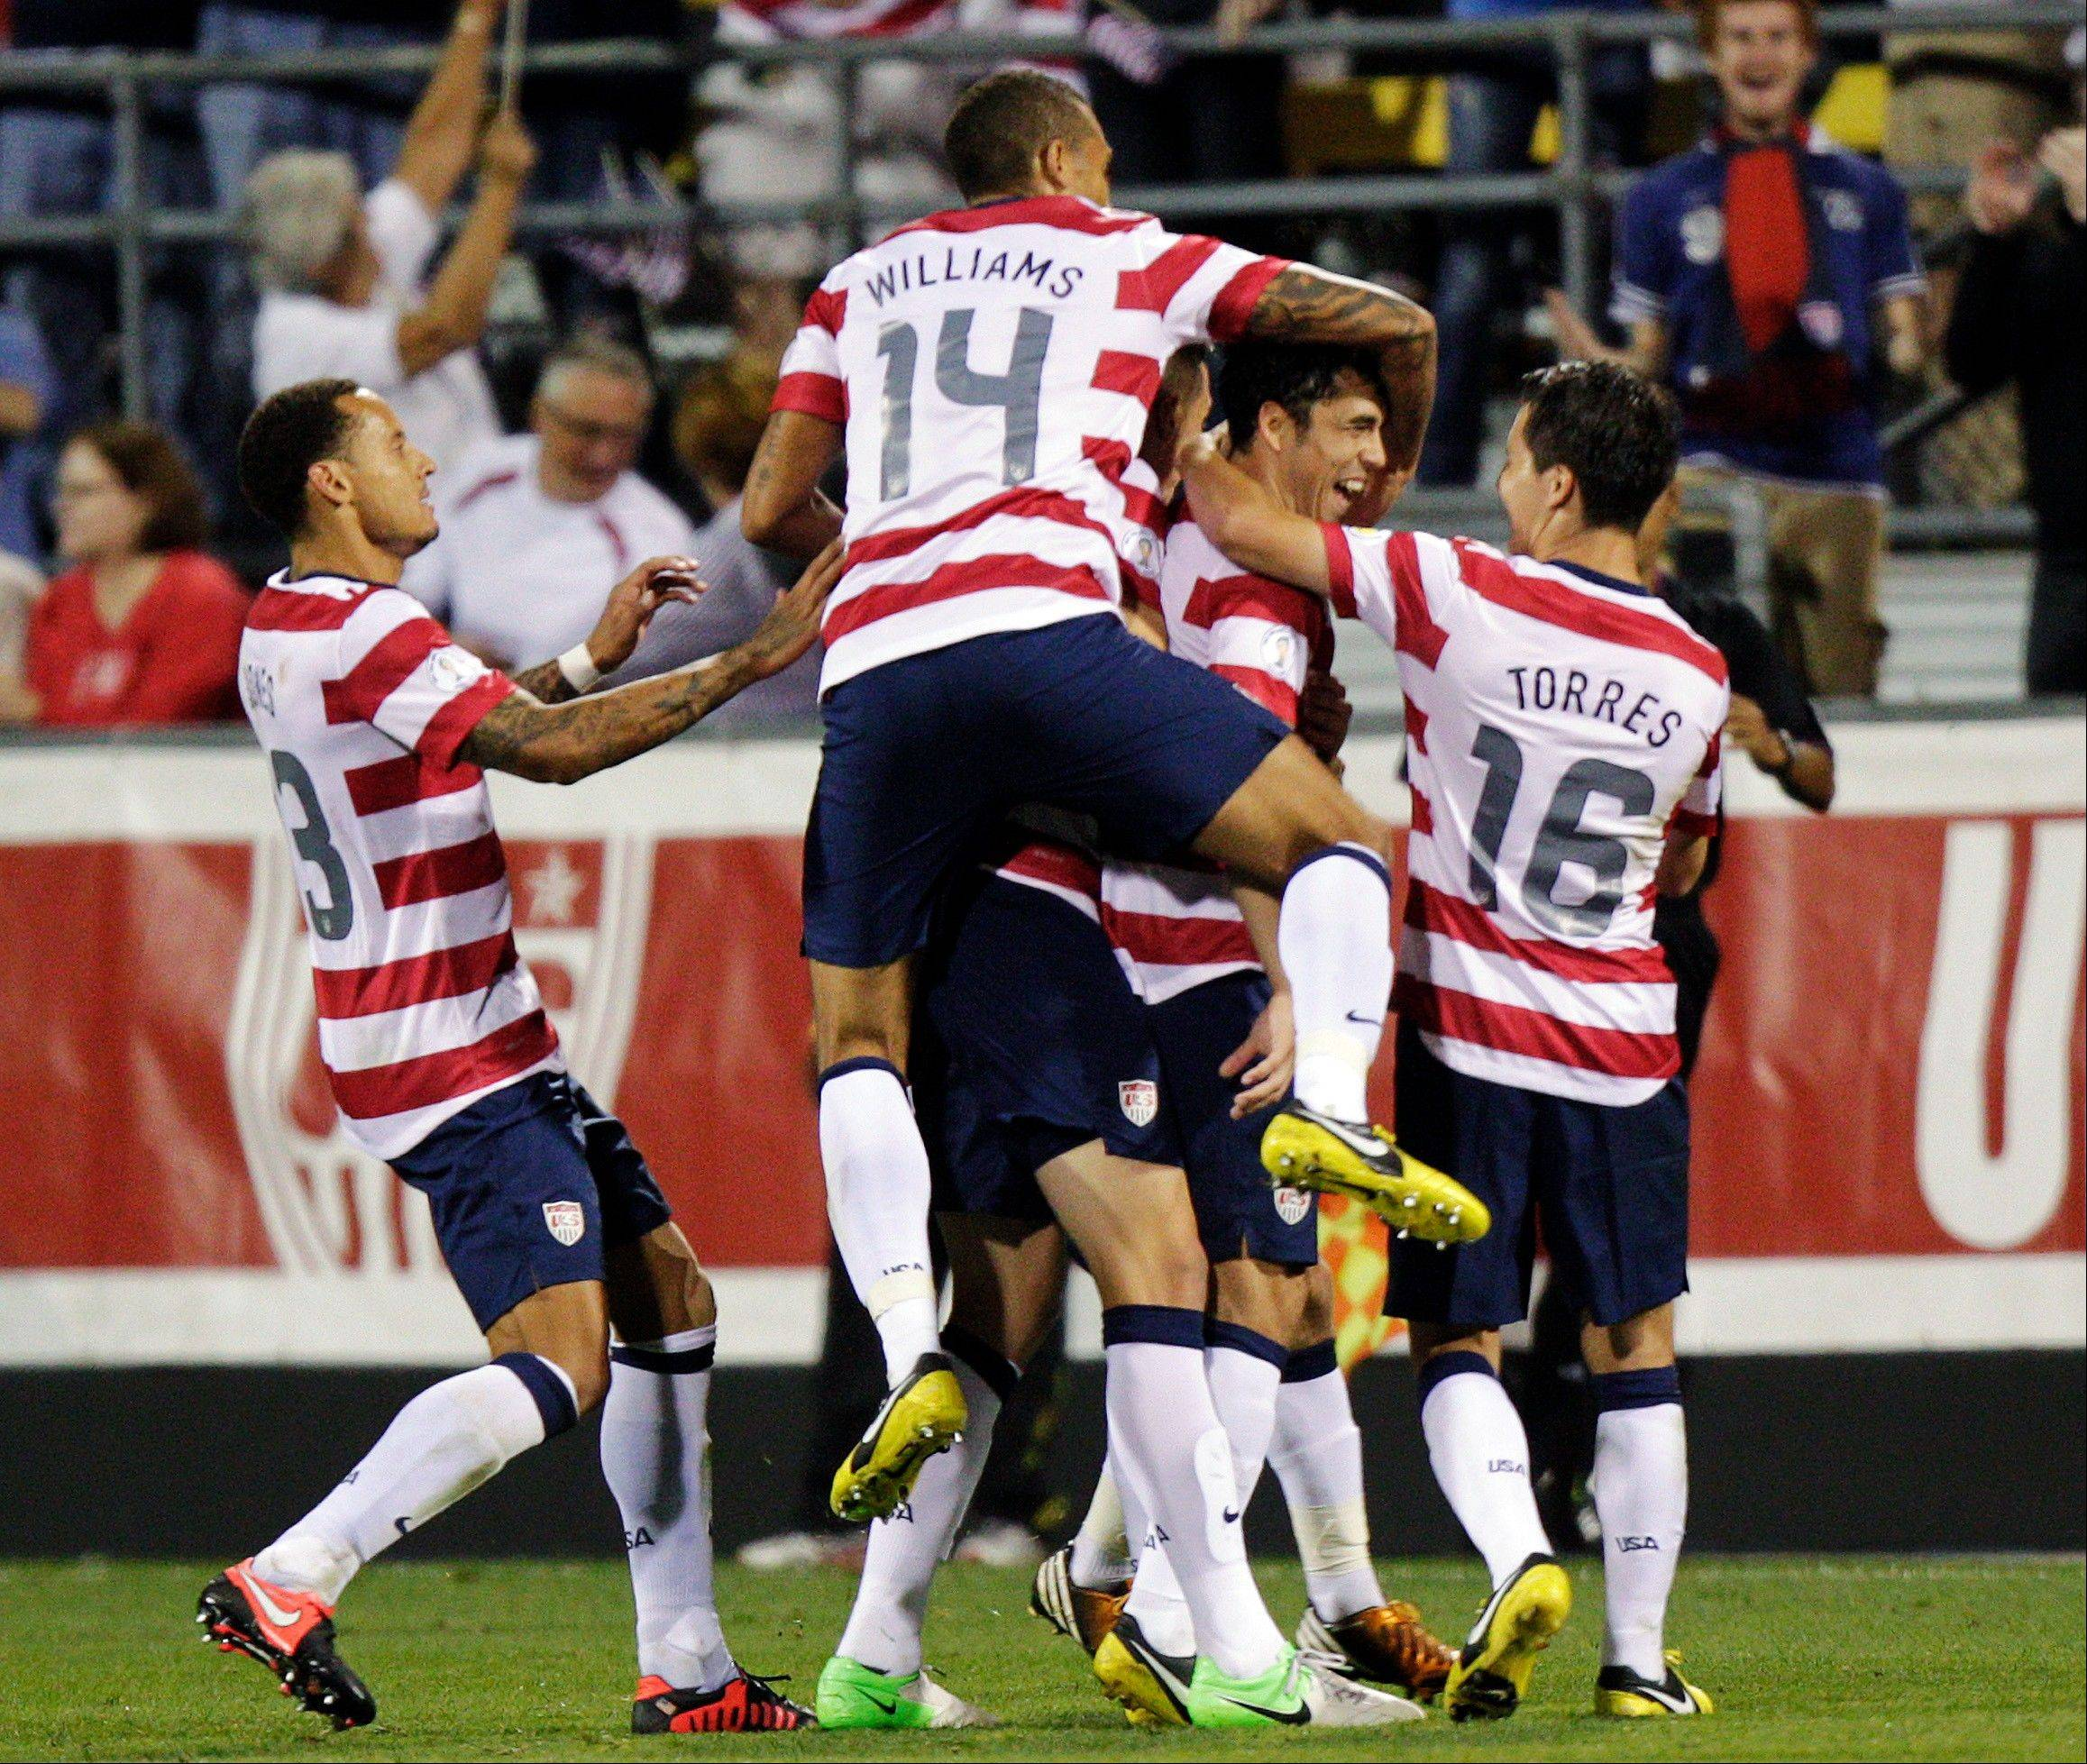 United States players celebrate a goal by Herculez Gomez against Jamaica during the second half of a World Cup qualifying soccer match Tuesday in Columbus, Ohio.